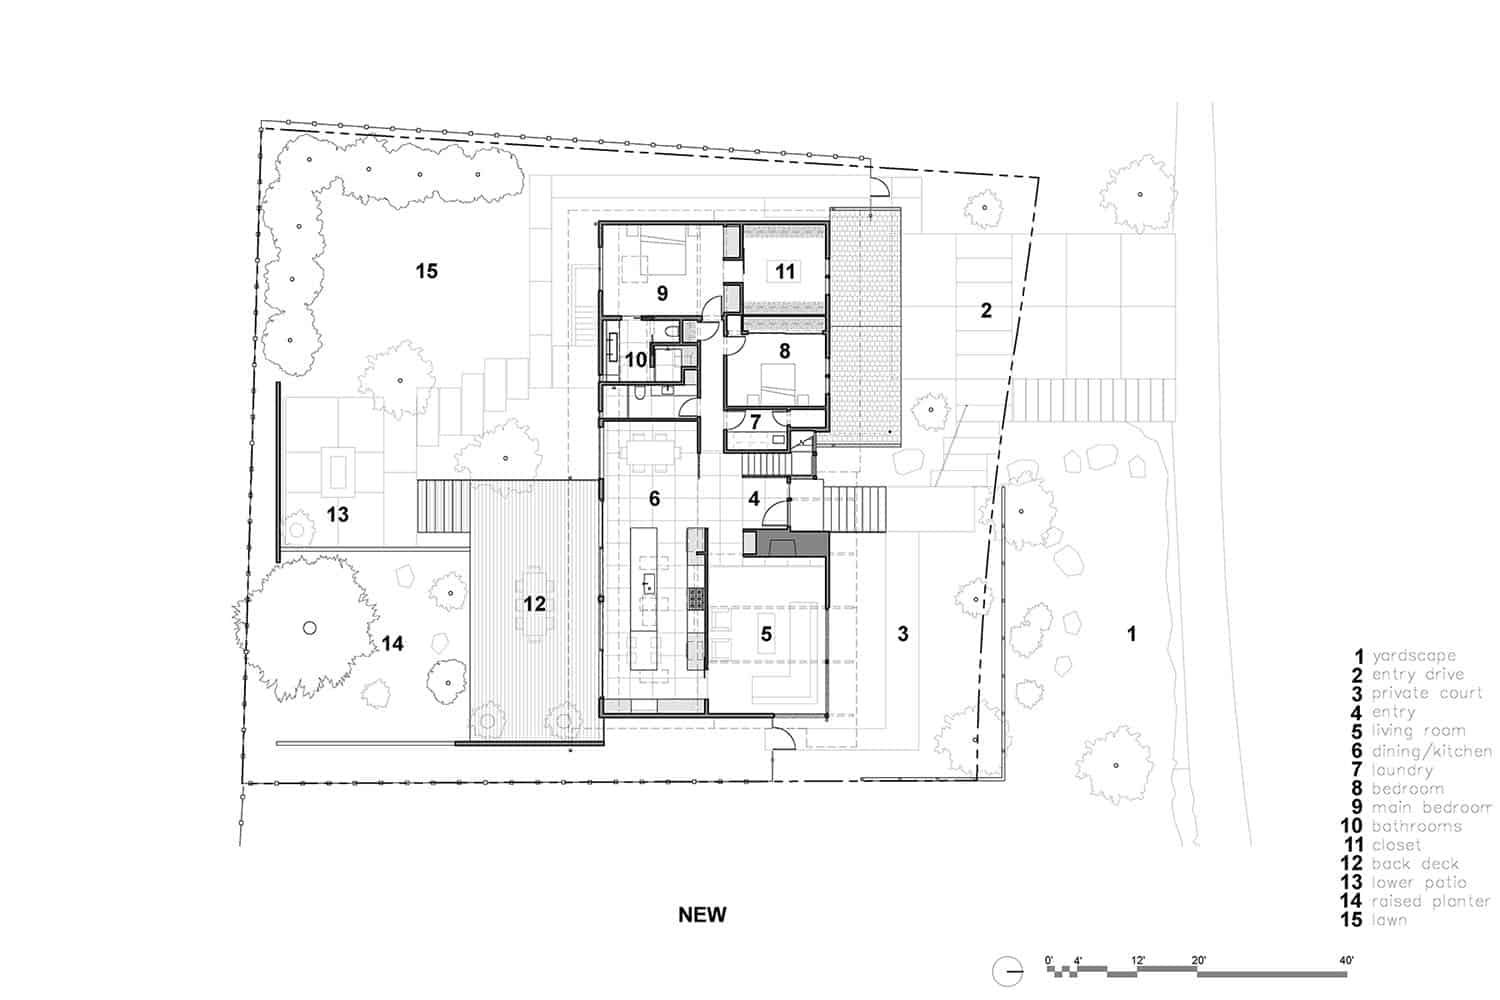 ranch-house-midcentury-floor-plan-after-remodel